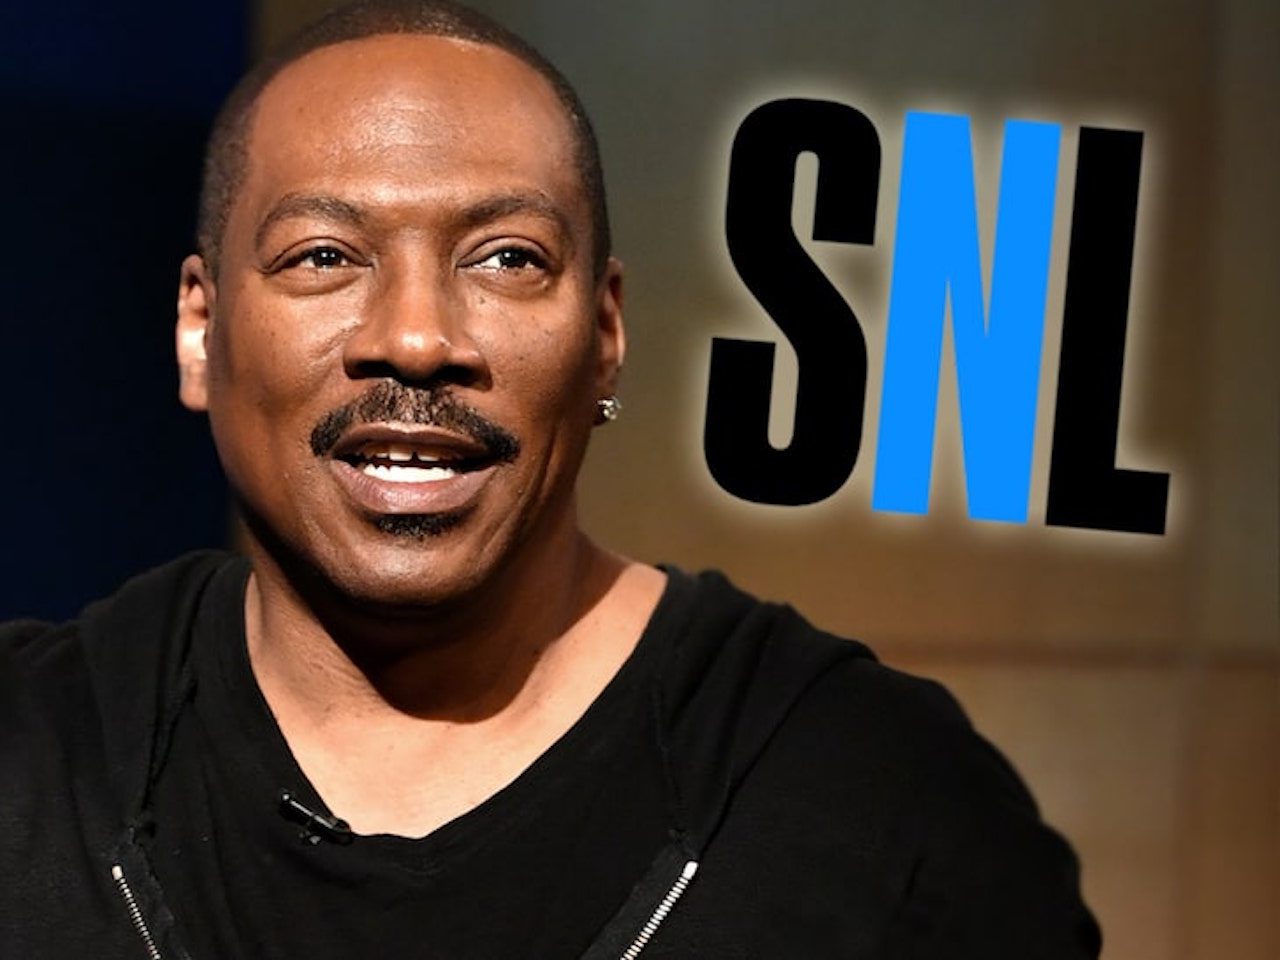 Eddie Murphy Saturday Night Live prop bets